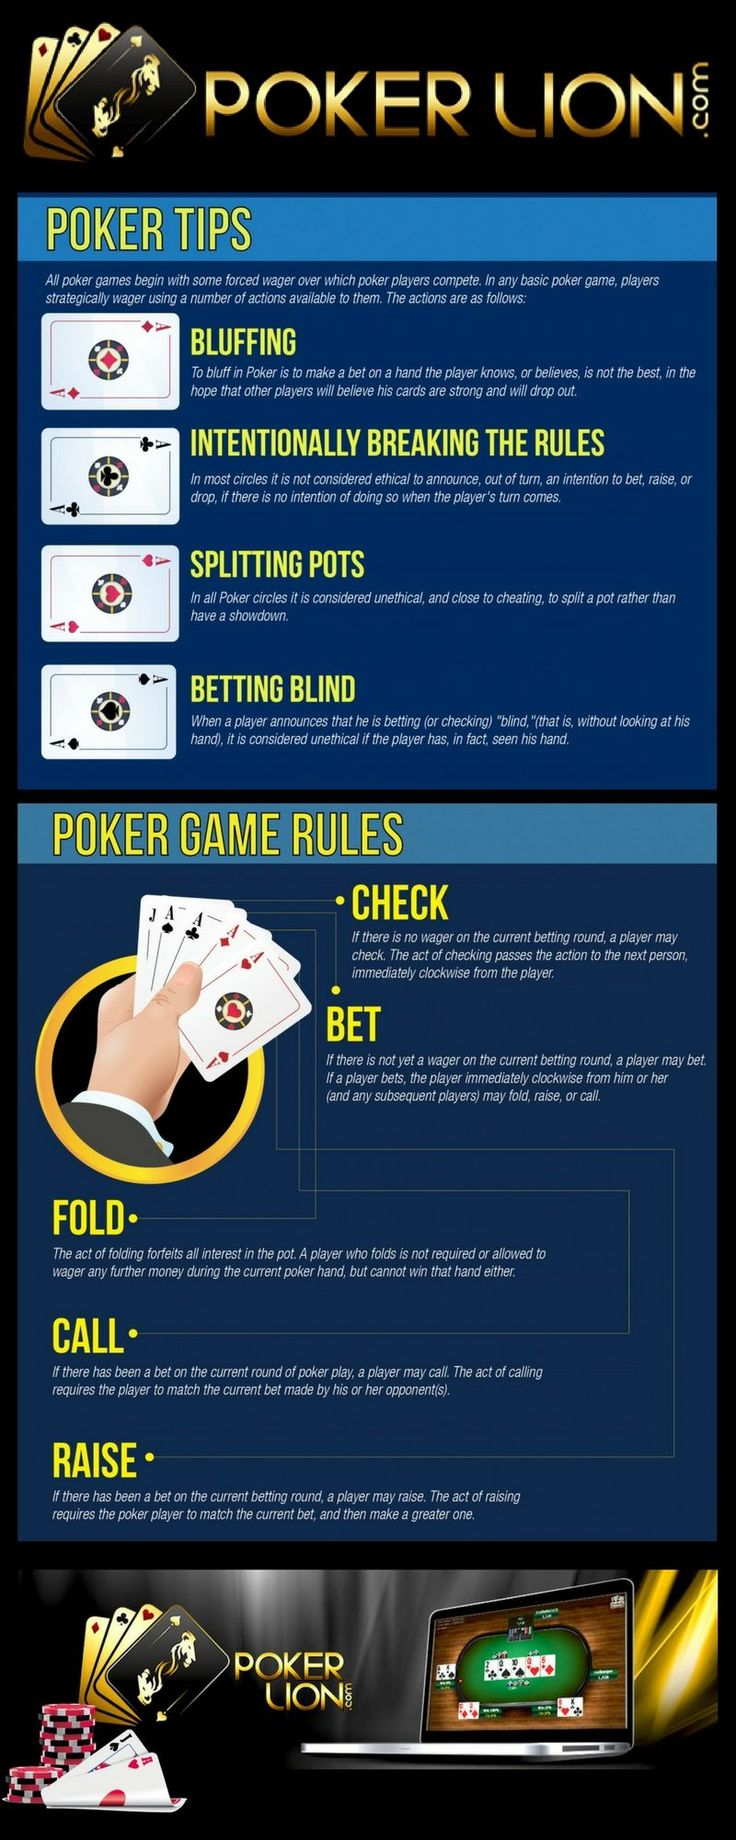 Learn how to play poker and poker tips with